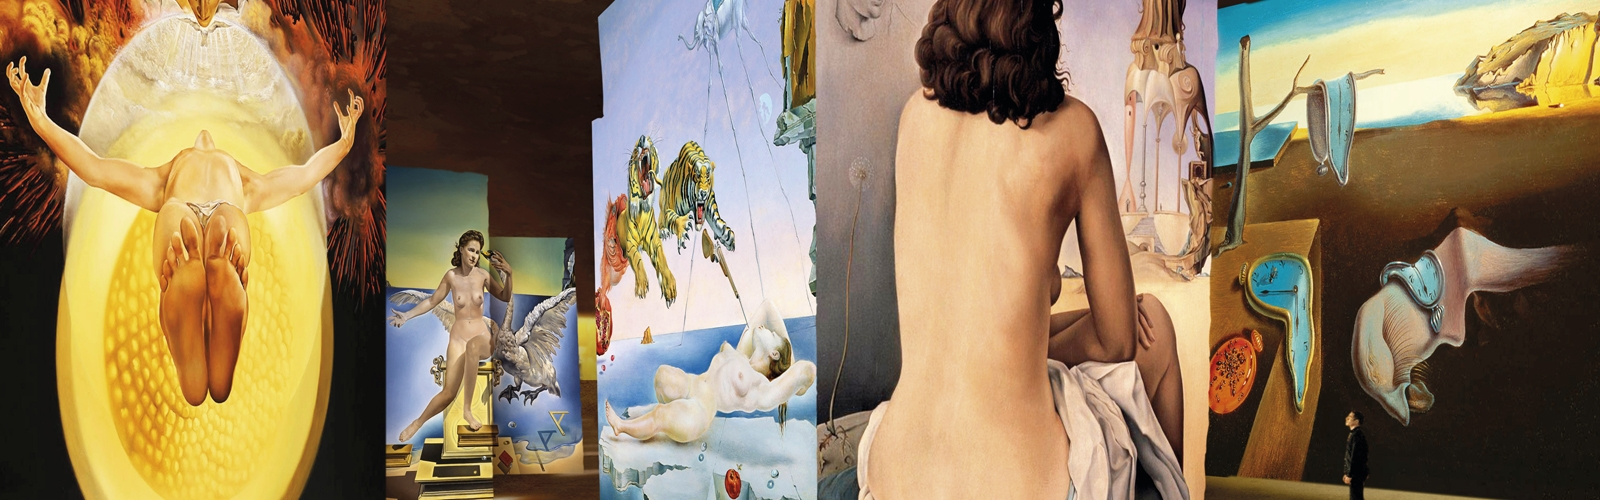 Dalí, the endless enigma